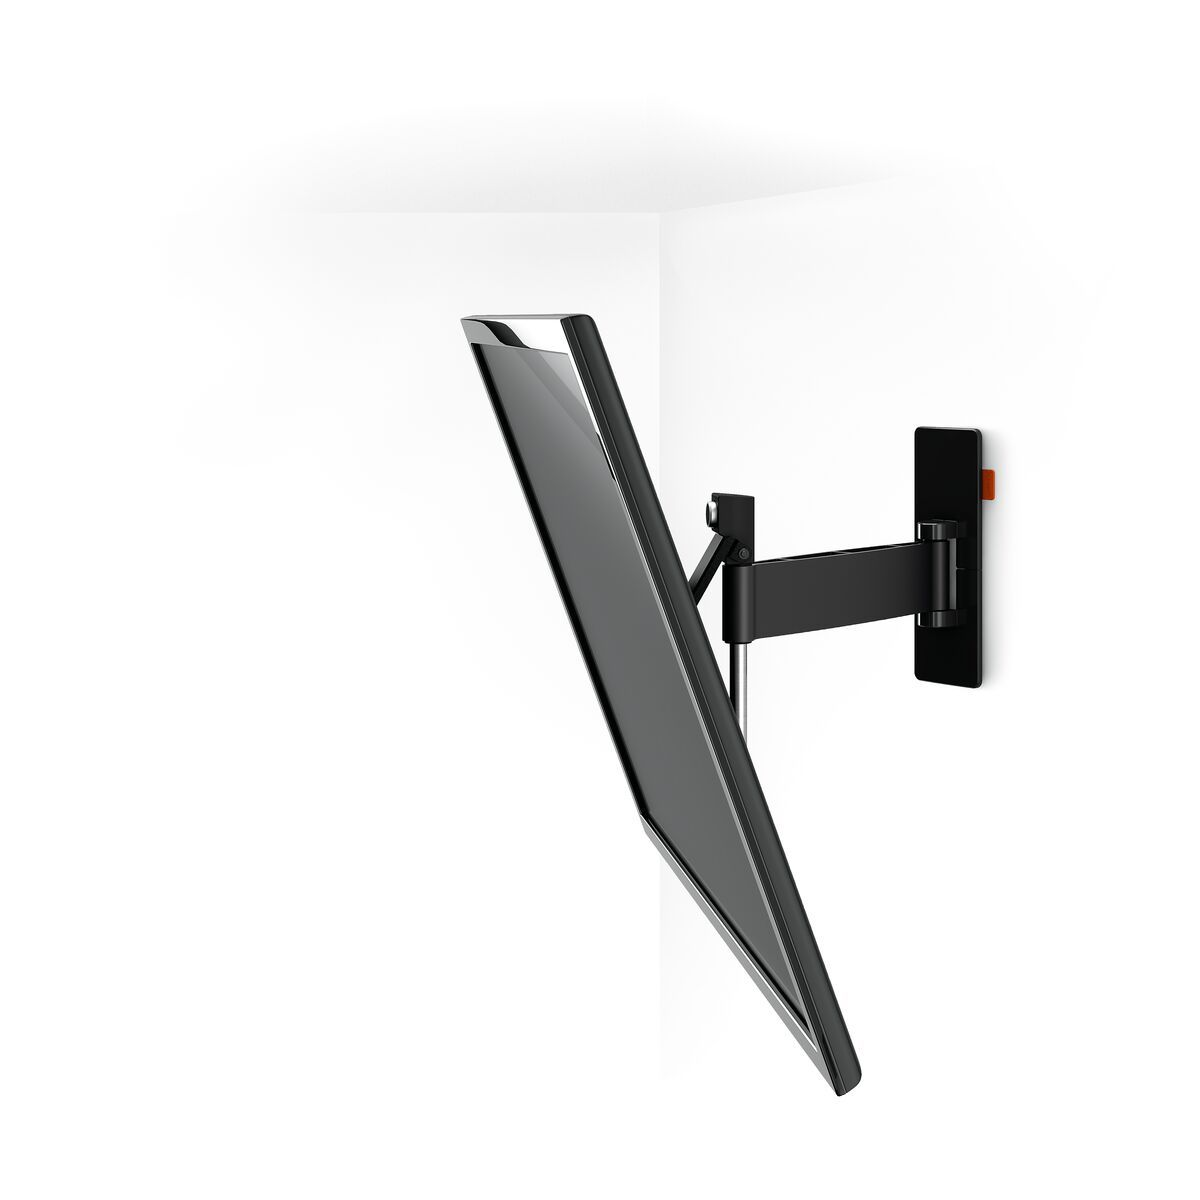 Vogel's WALL 3325 Full-Motion TV Wall Mount - Suitable for 40 up to 65 inch TVs - Motion (up to 120°) - Tilt up to 20° - White wall